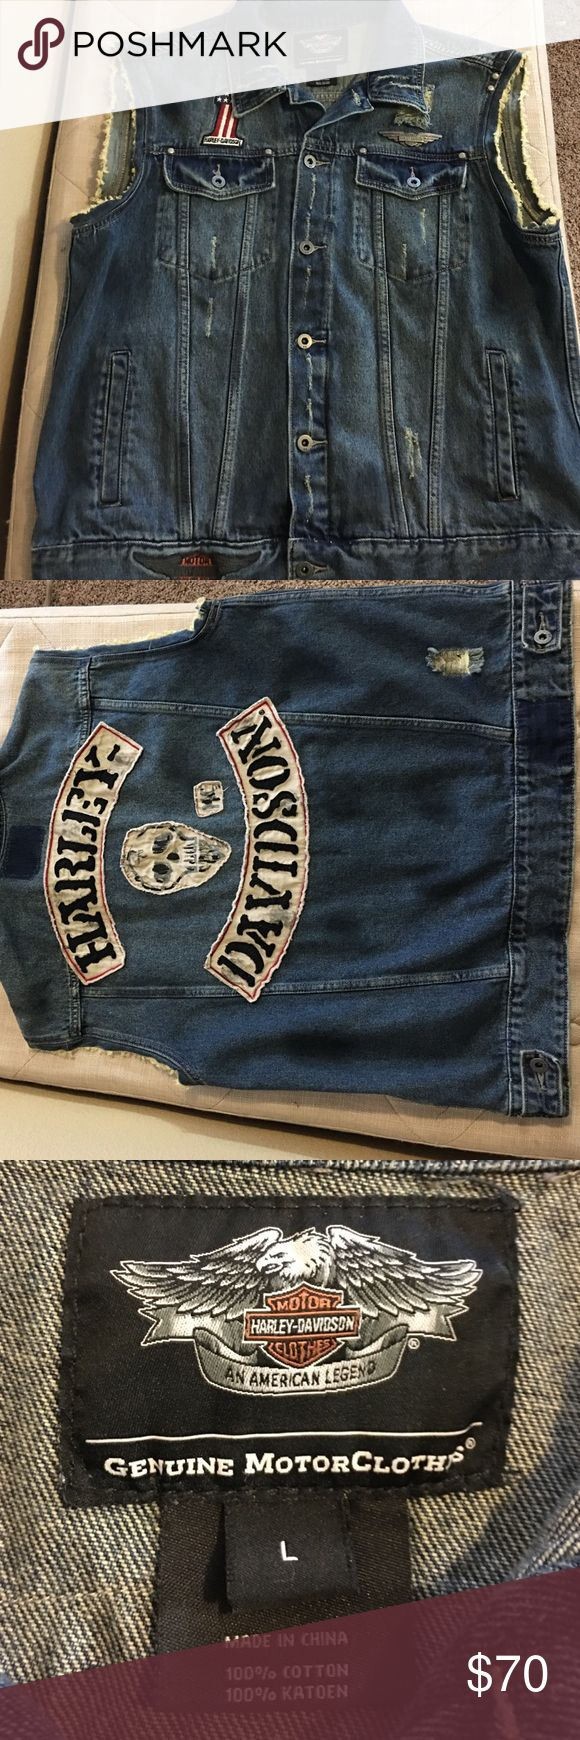 LIMITED EDITION HARLEY DAVIDSON DENIM VEST!! Limited Edition Harley Davidson vest. There are only a few out there and this is one of them. Worn once. In perfect condition. Harley-Davidson Jackets & Coats Vests